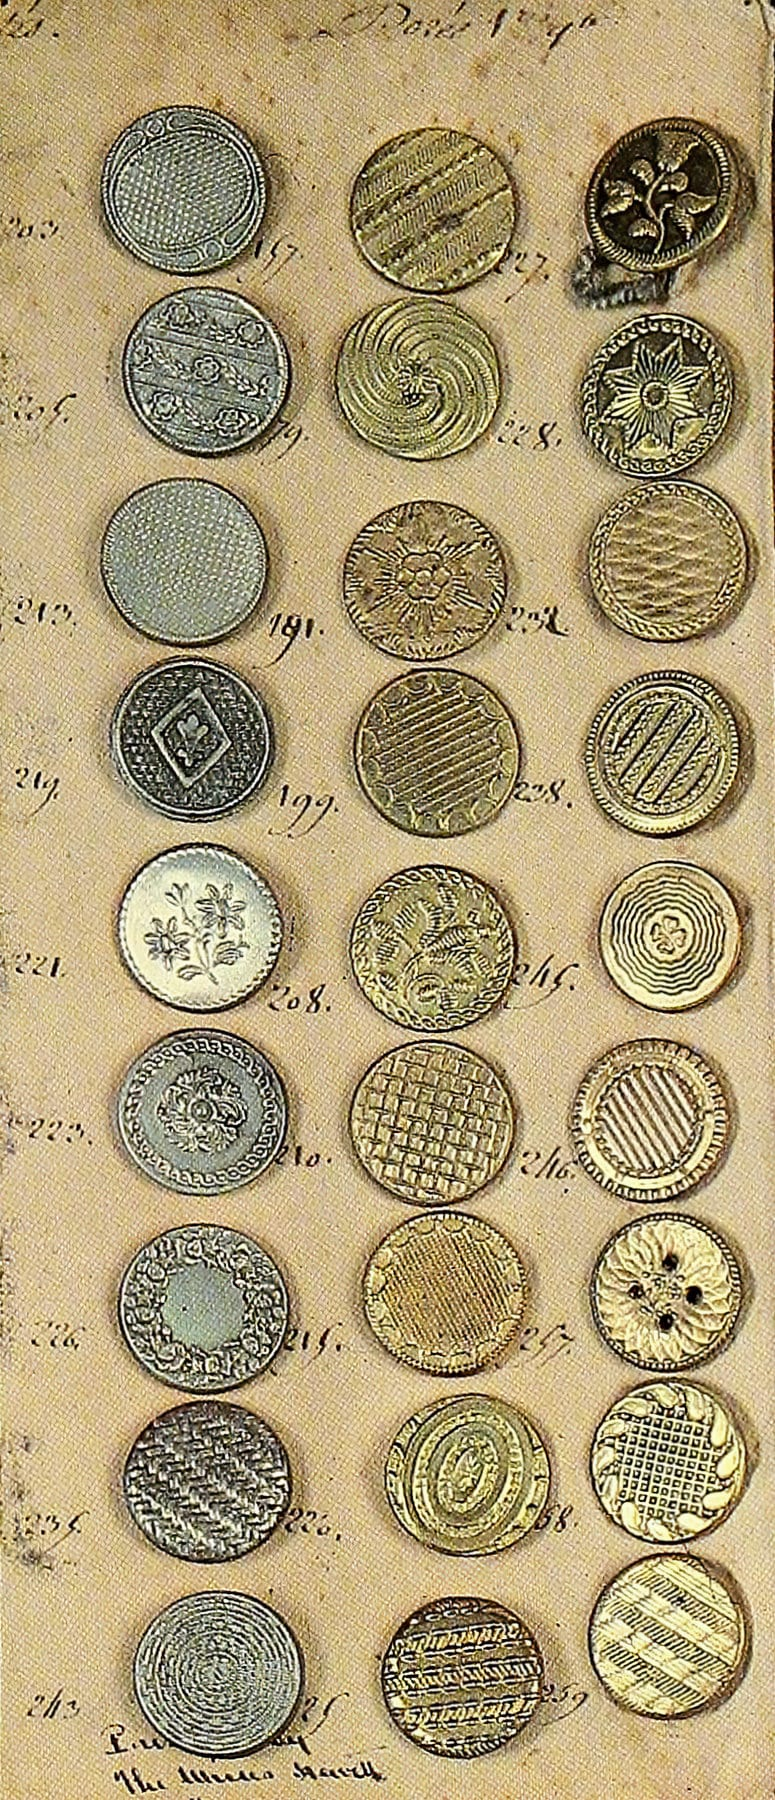 Antique buttons in the collection of the Cooper-Hewitt Museum as of 1982